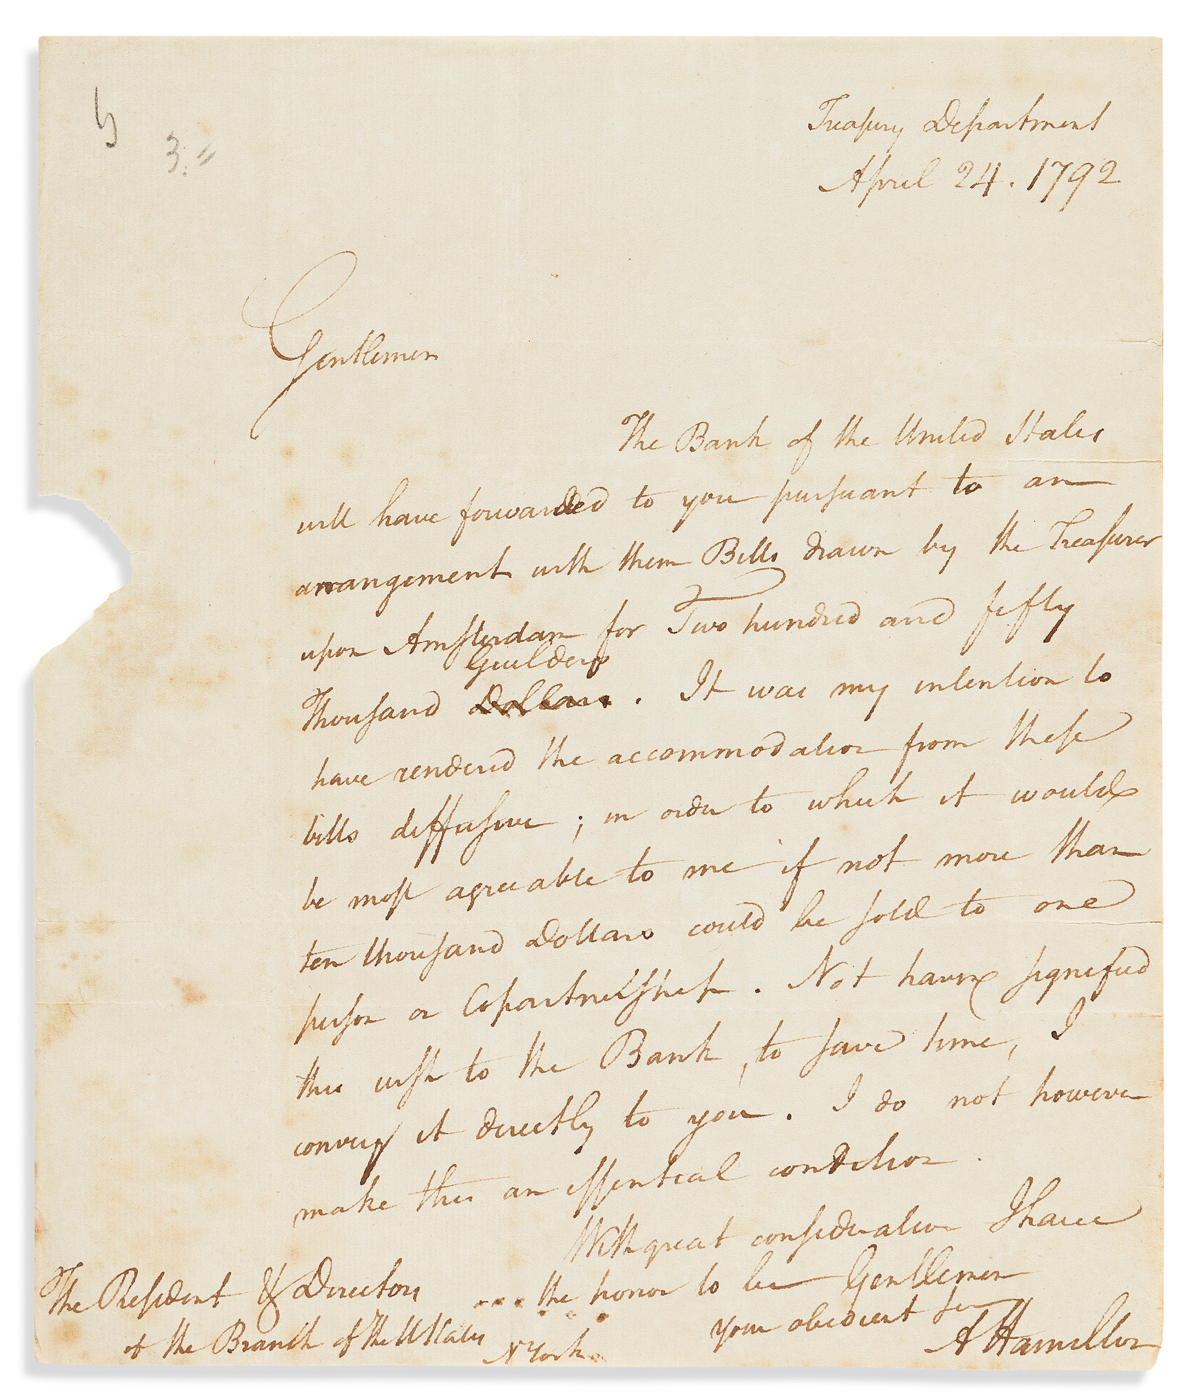 HAMILTON, ALEXANDER. Autograph Letter Signed, AHamilton, as Secretary of the Treasury, to the president and directors of the New York